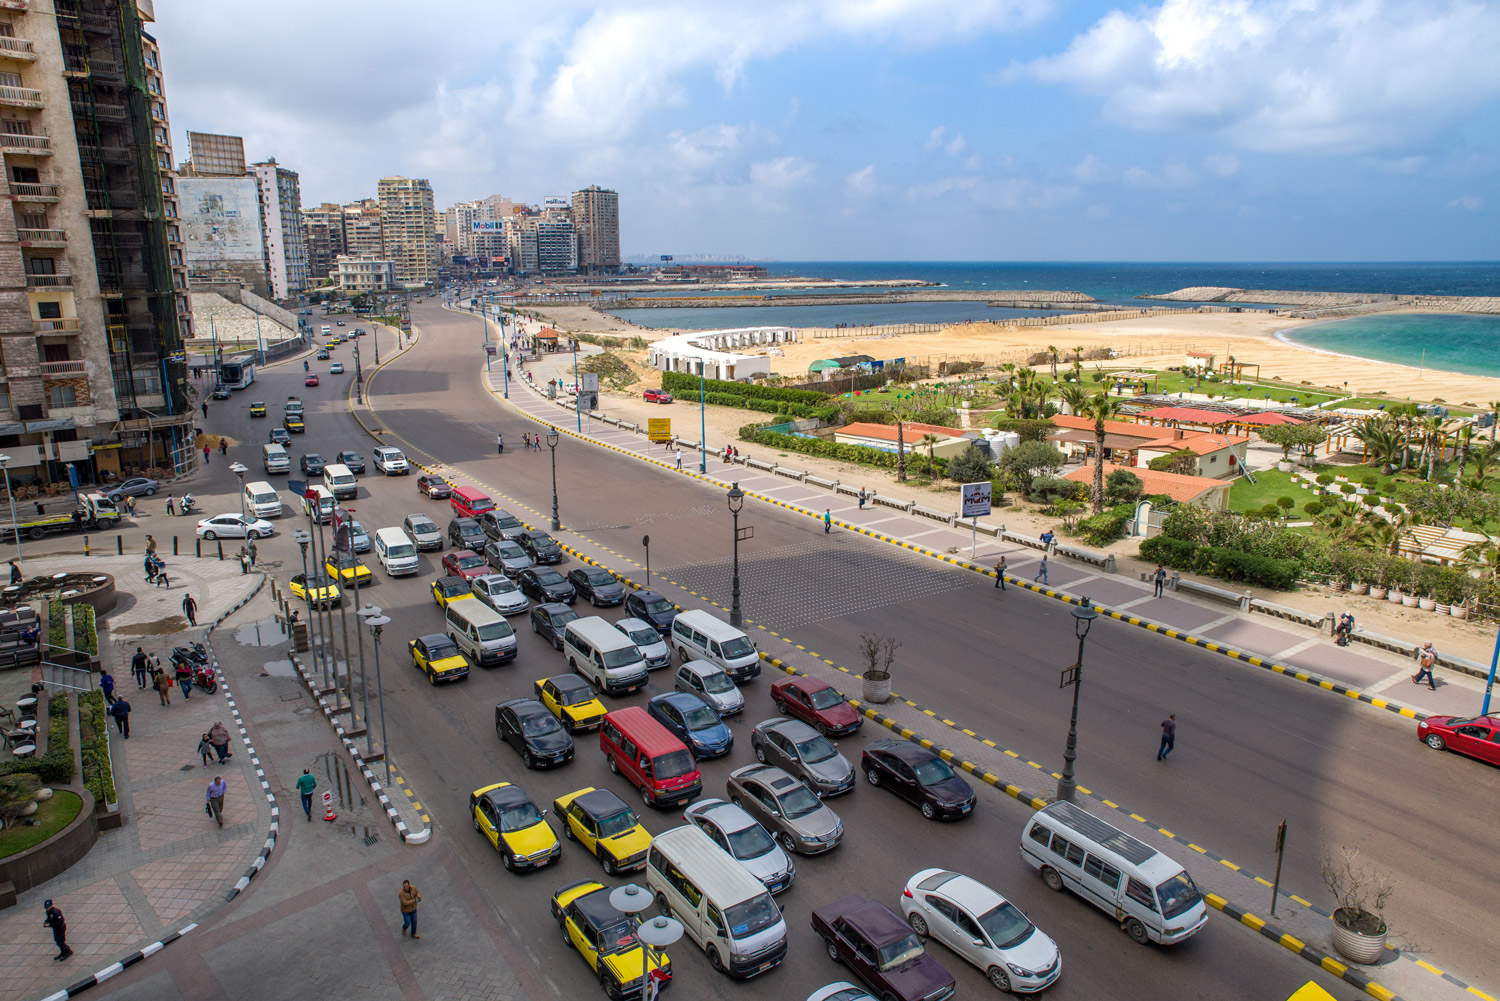 The sea-side city of Alexandria was struck by a terror bombing in Palm Sunday in April, killing 16 at St Marks Cathedral. On the same day a second bombing killed scores of people at a church service in Tanta, a city in the Nile Delta.